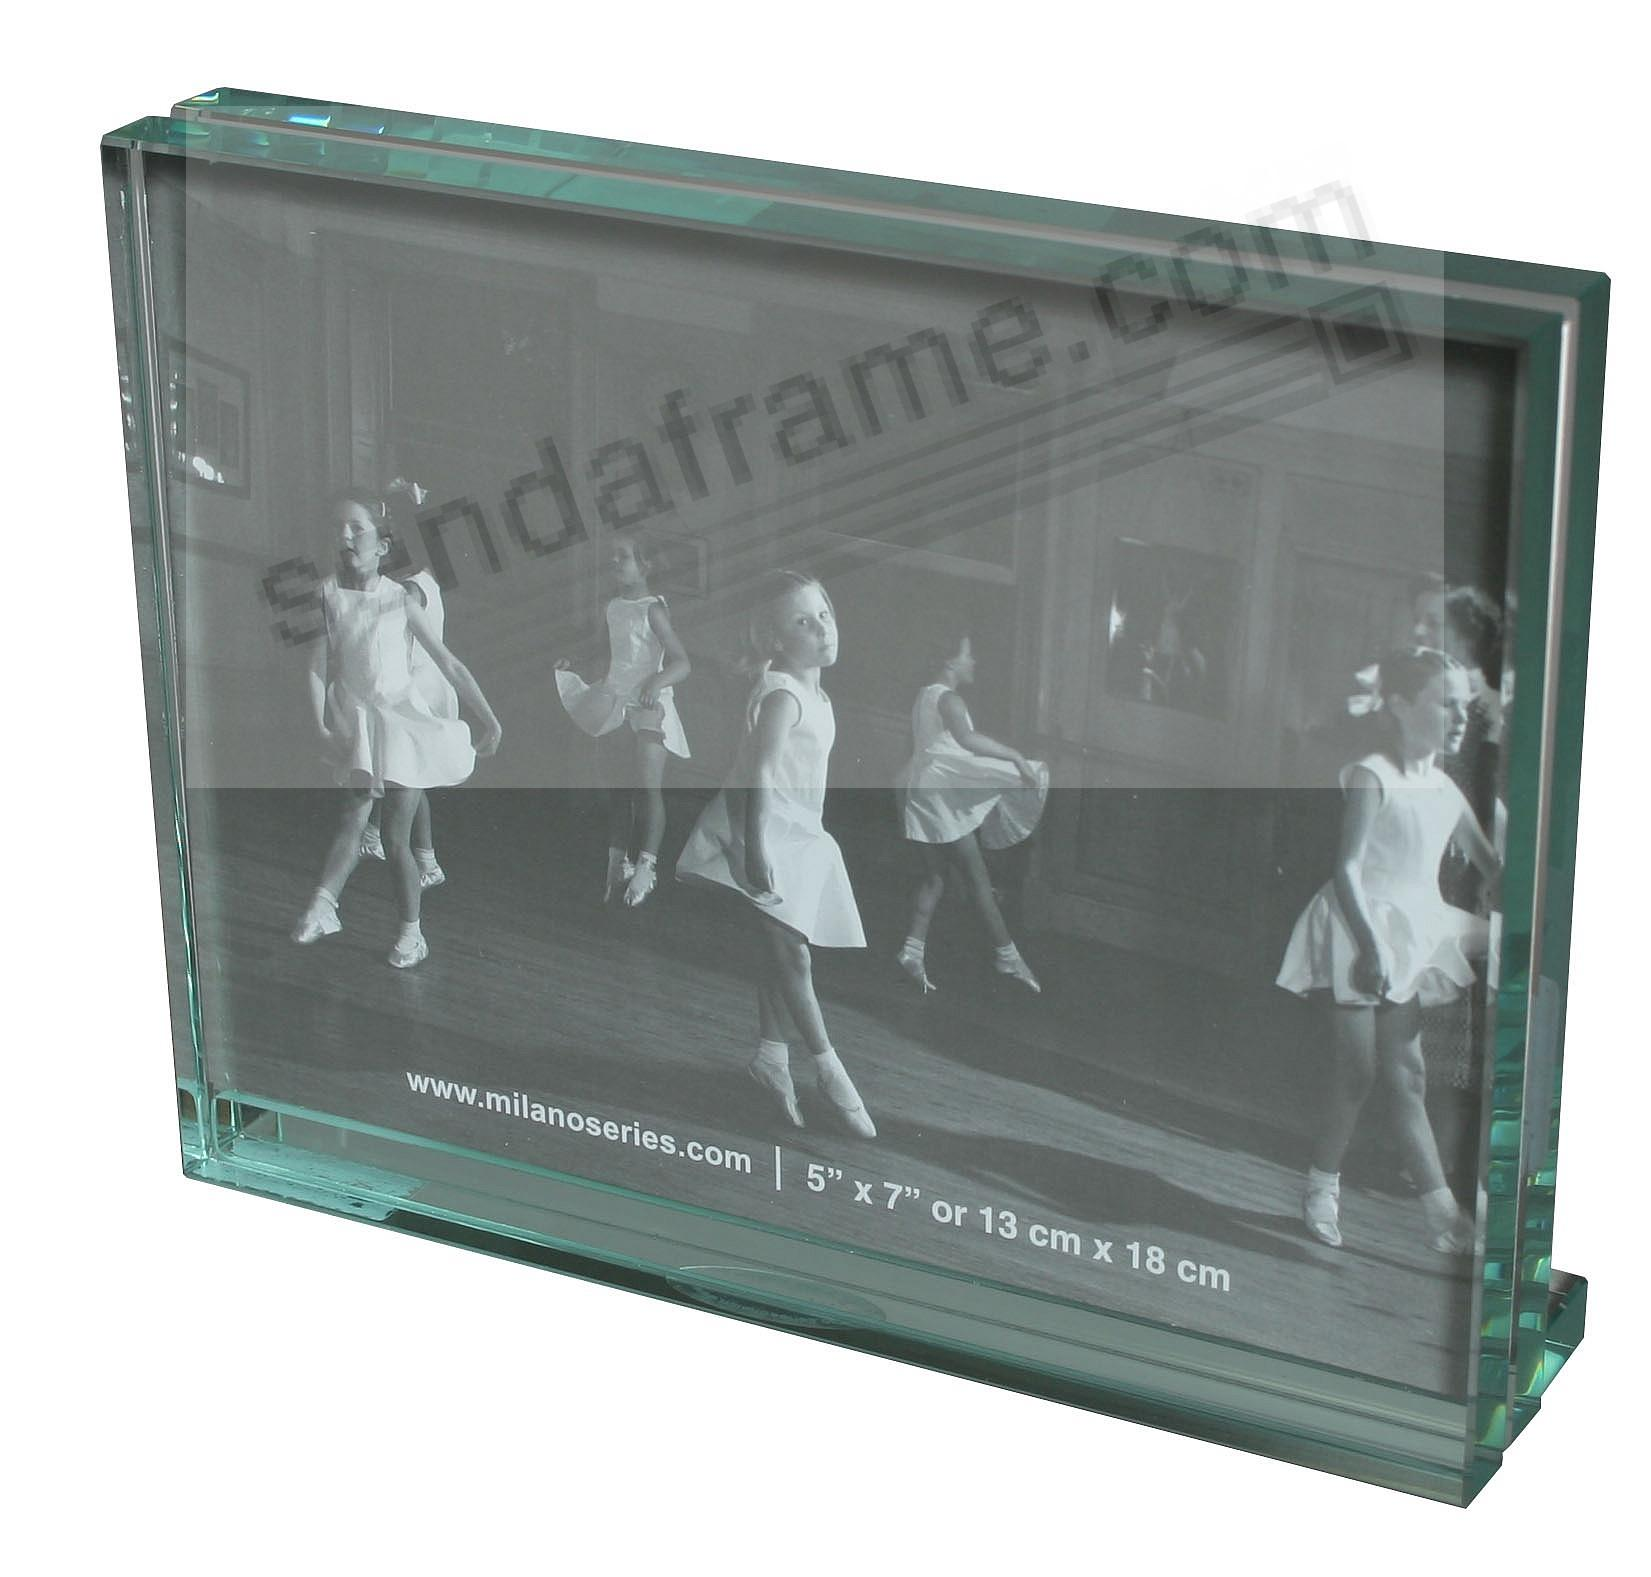 Clarity glass block 5x7 frame by milano series picture for Glass block window frame